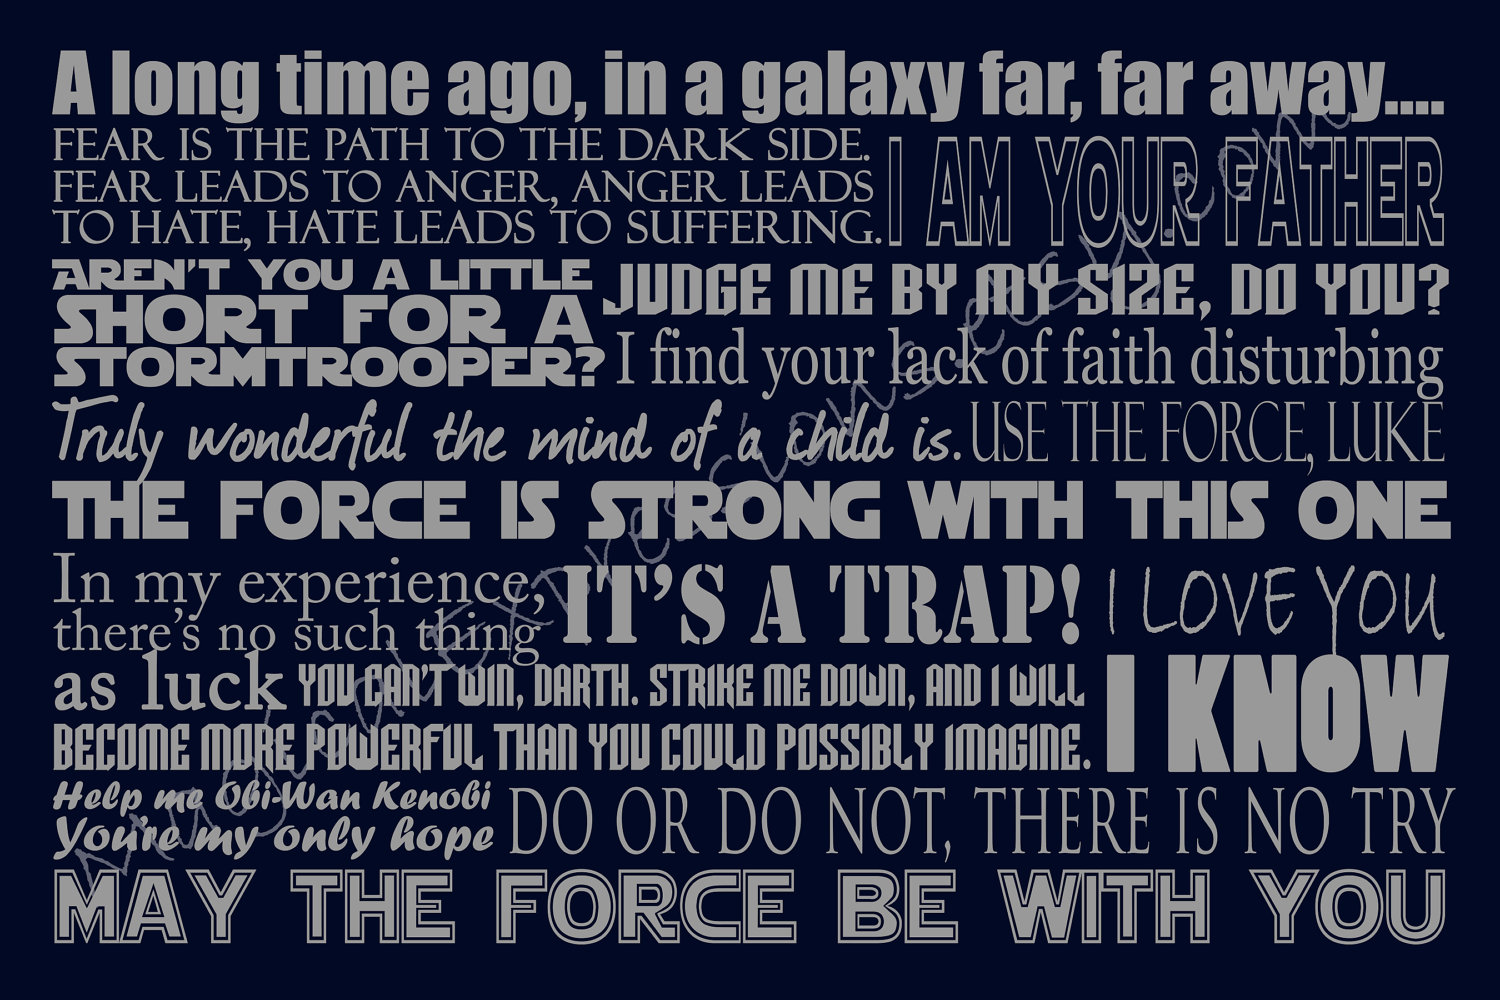 Top 45 Famous Star Wars Quotes With Images Of All Time |Star Wars Best Quotes Ever